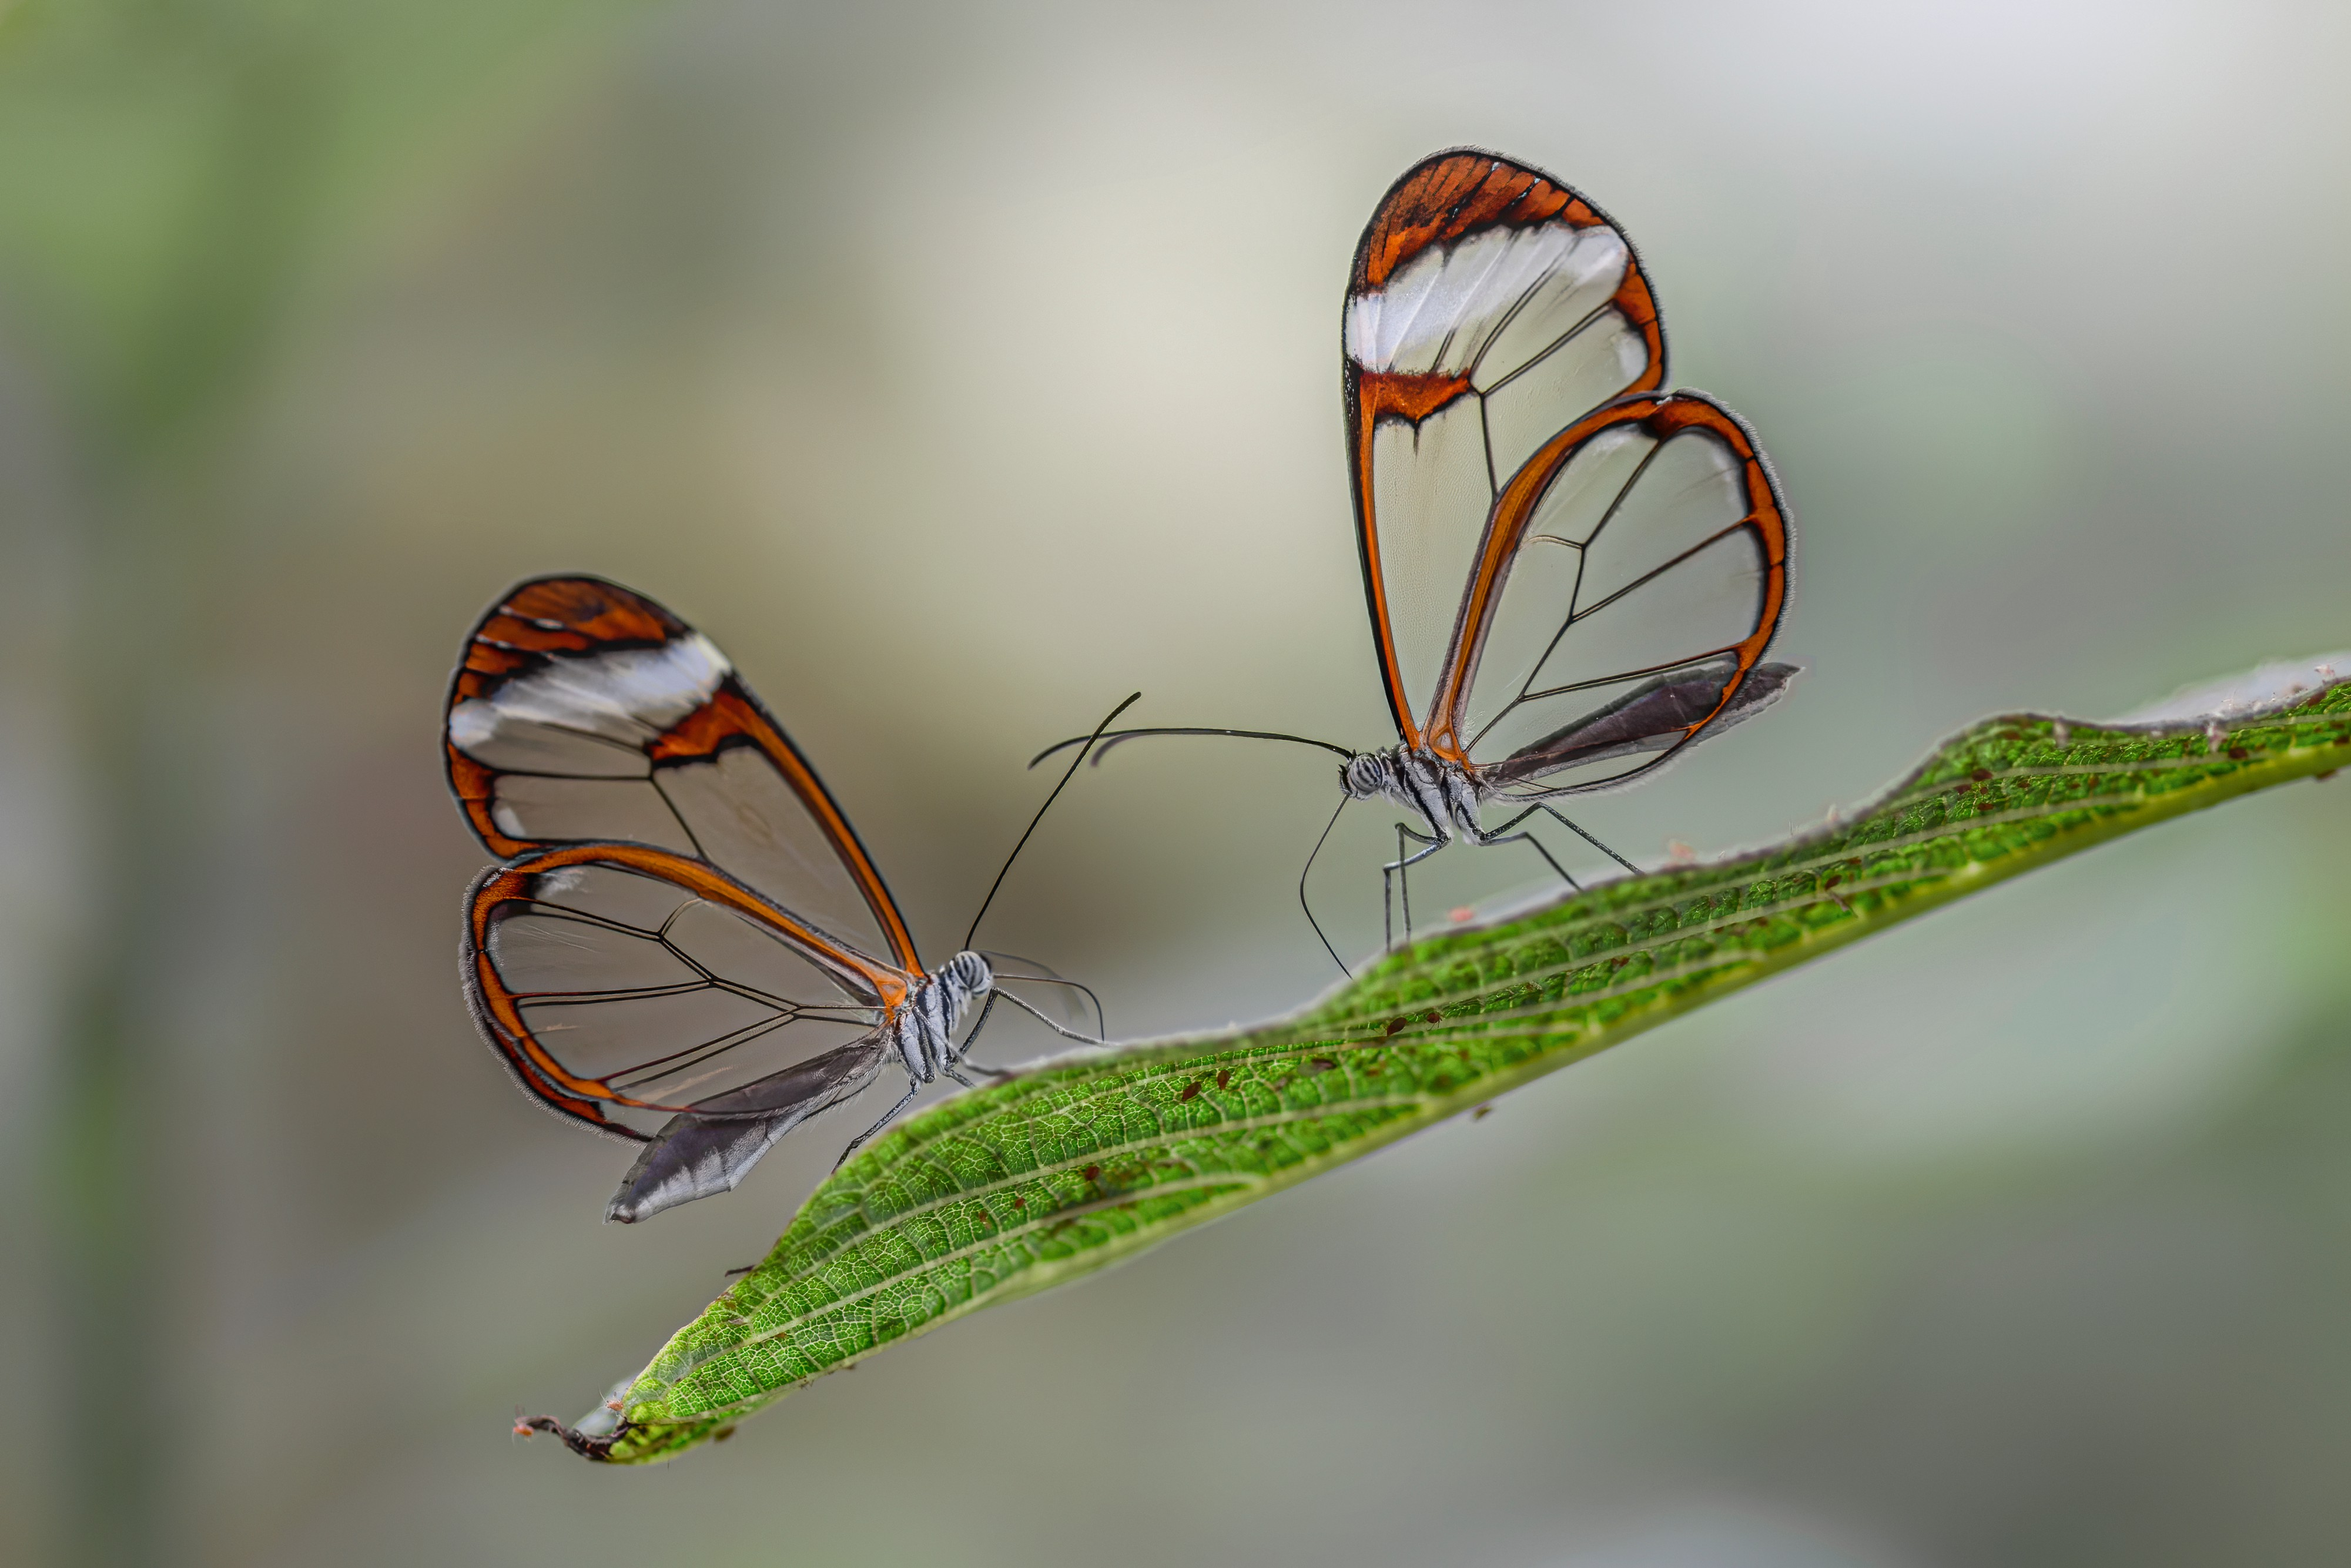 two butterflies with opaque wings, like windows, touching antennaes